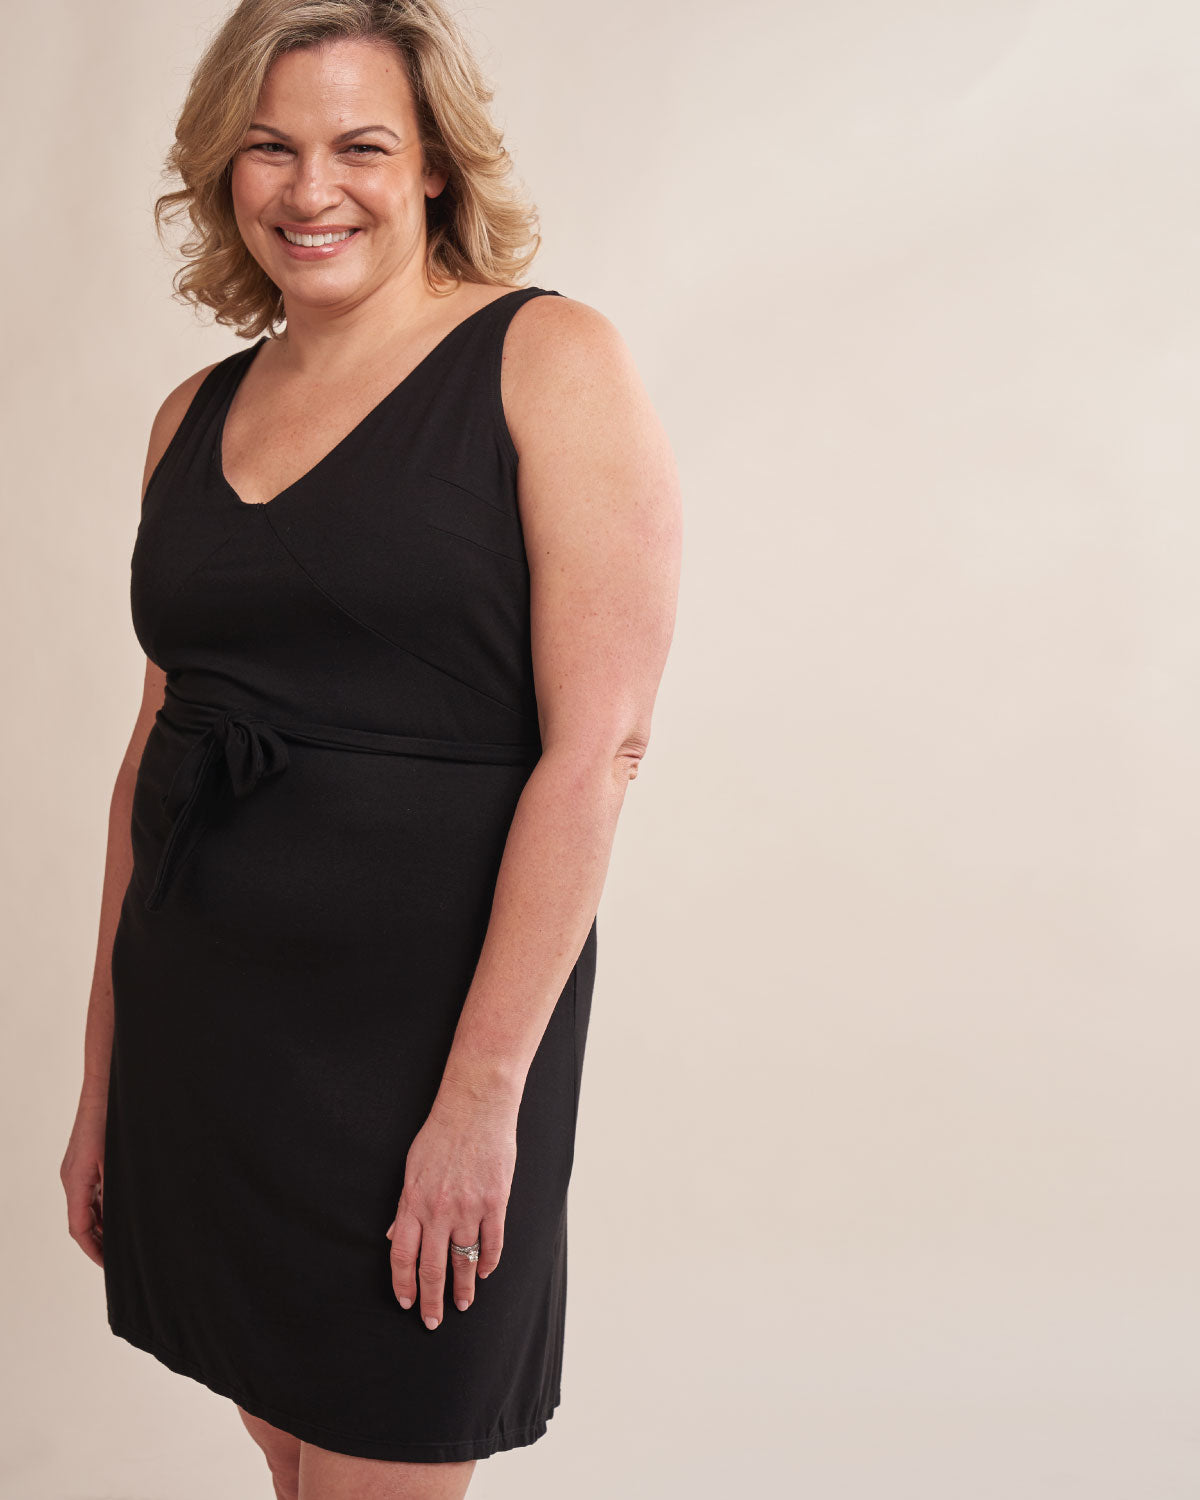 Black, tank v neck wrap dress with a tie waist, smooth mesh back panels & an attachable drain belt.